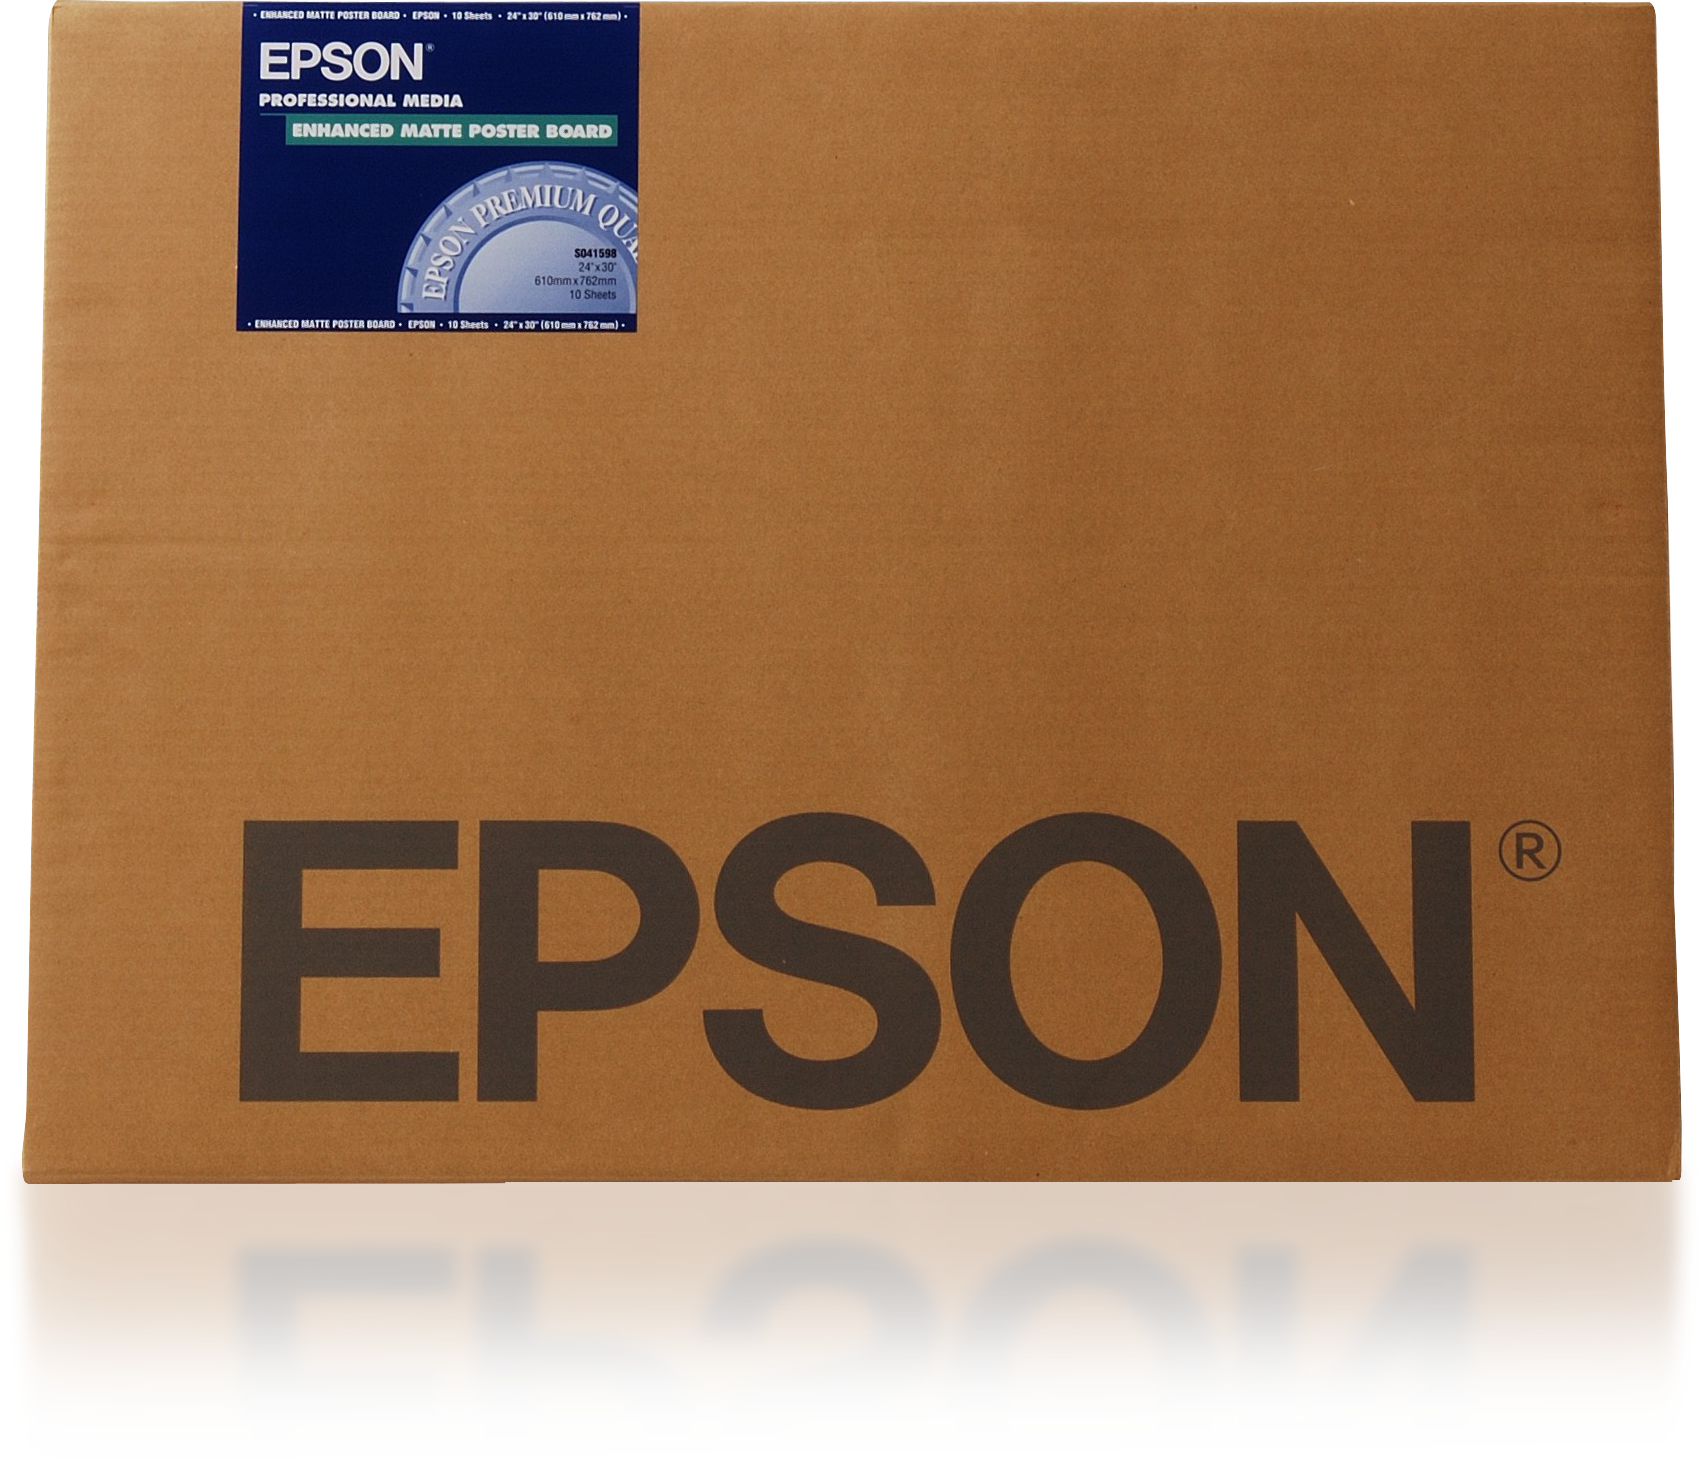 "Epson Enhanced Posterboard, 24"" x 30"", 1130g/m² large format media"